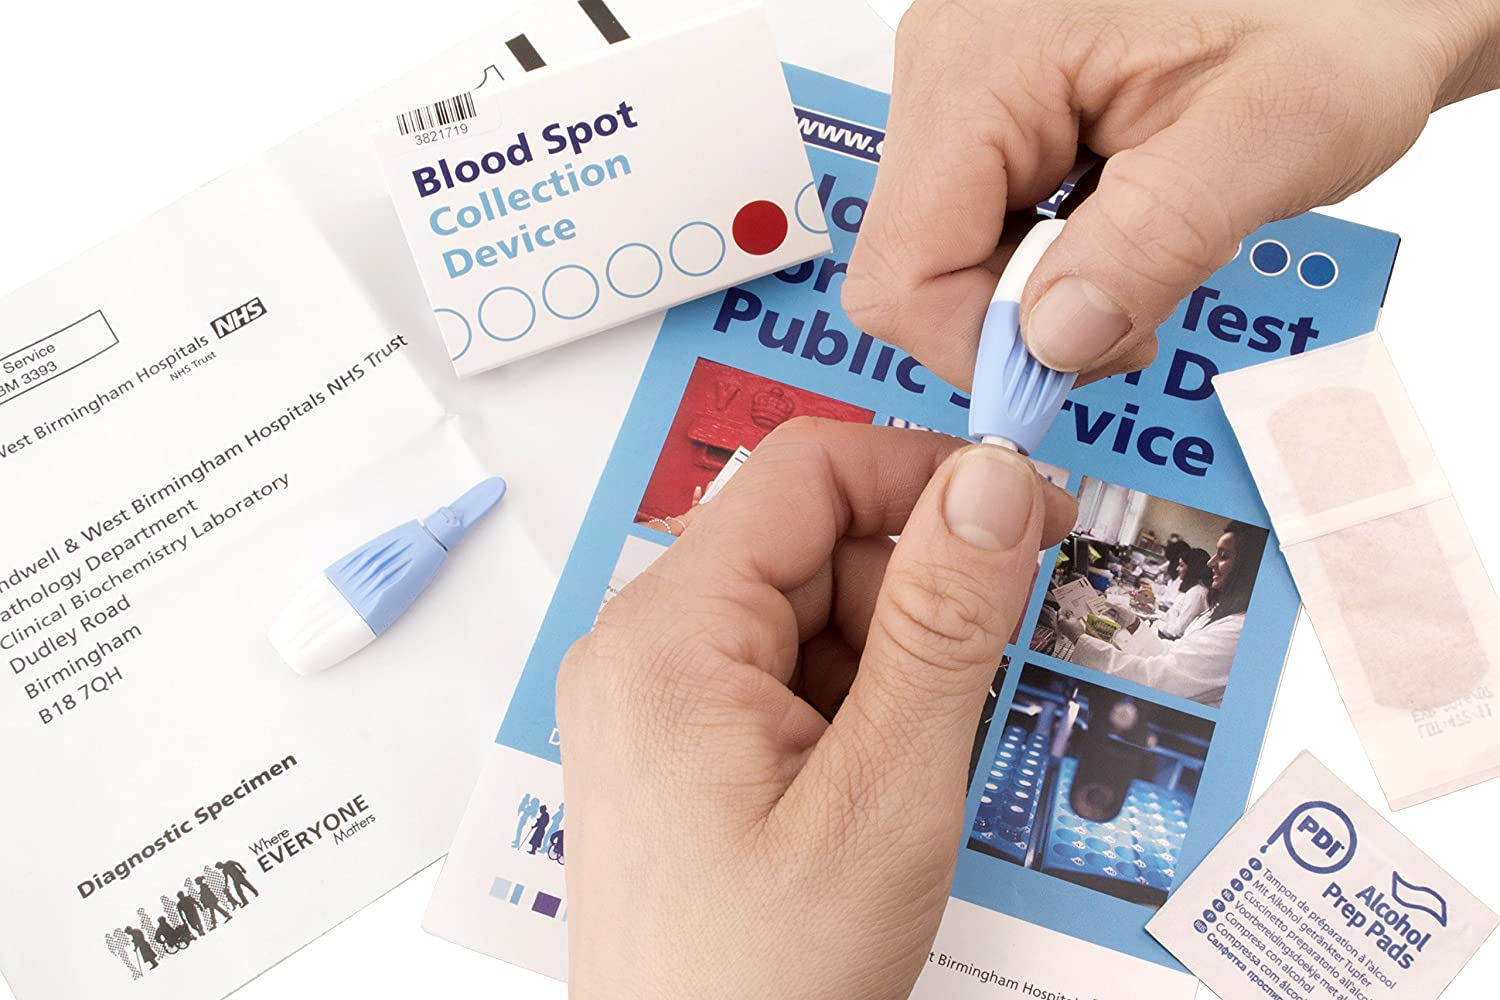 SunVit-D3 Vitamin D Blood Test Kit - (Test Your Vitamin D Levels from The  Comfort of Your Home)